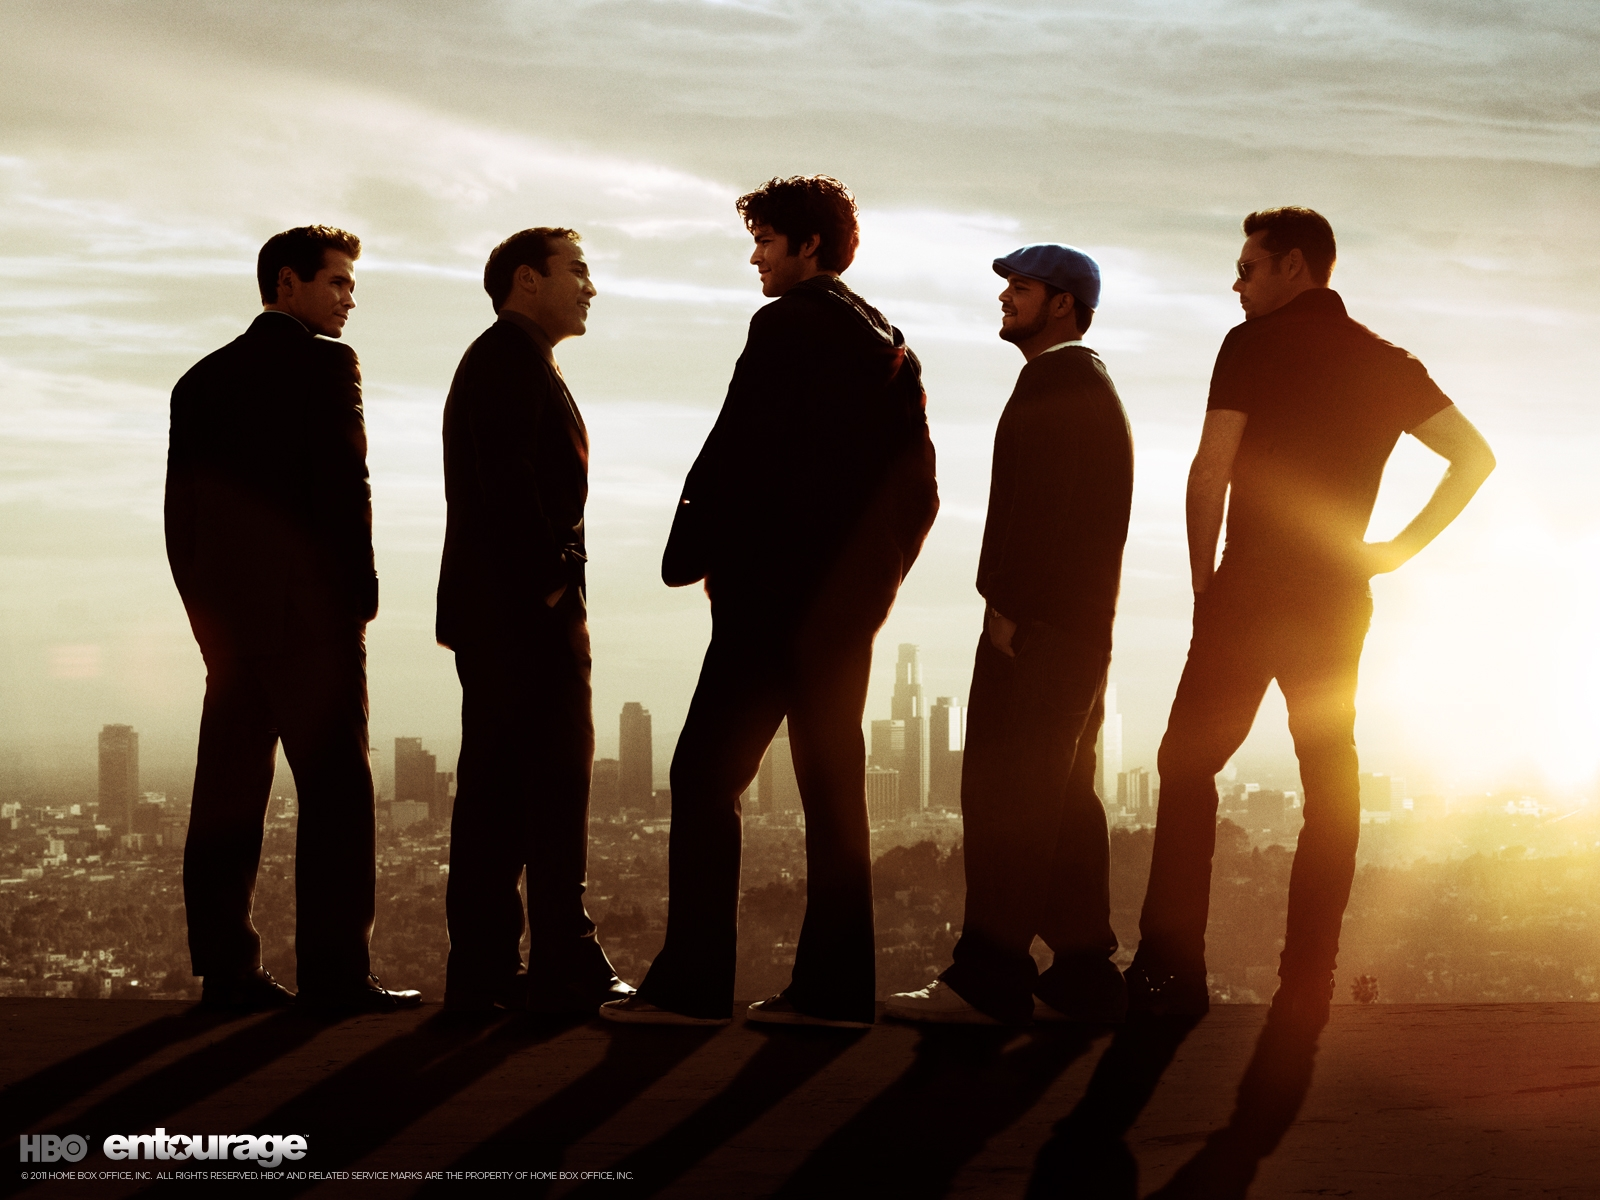 The Entourage Movie has an official trailer!